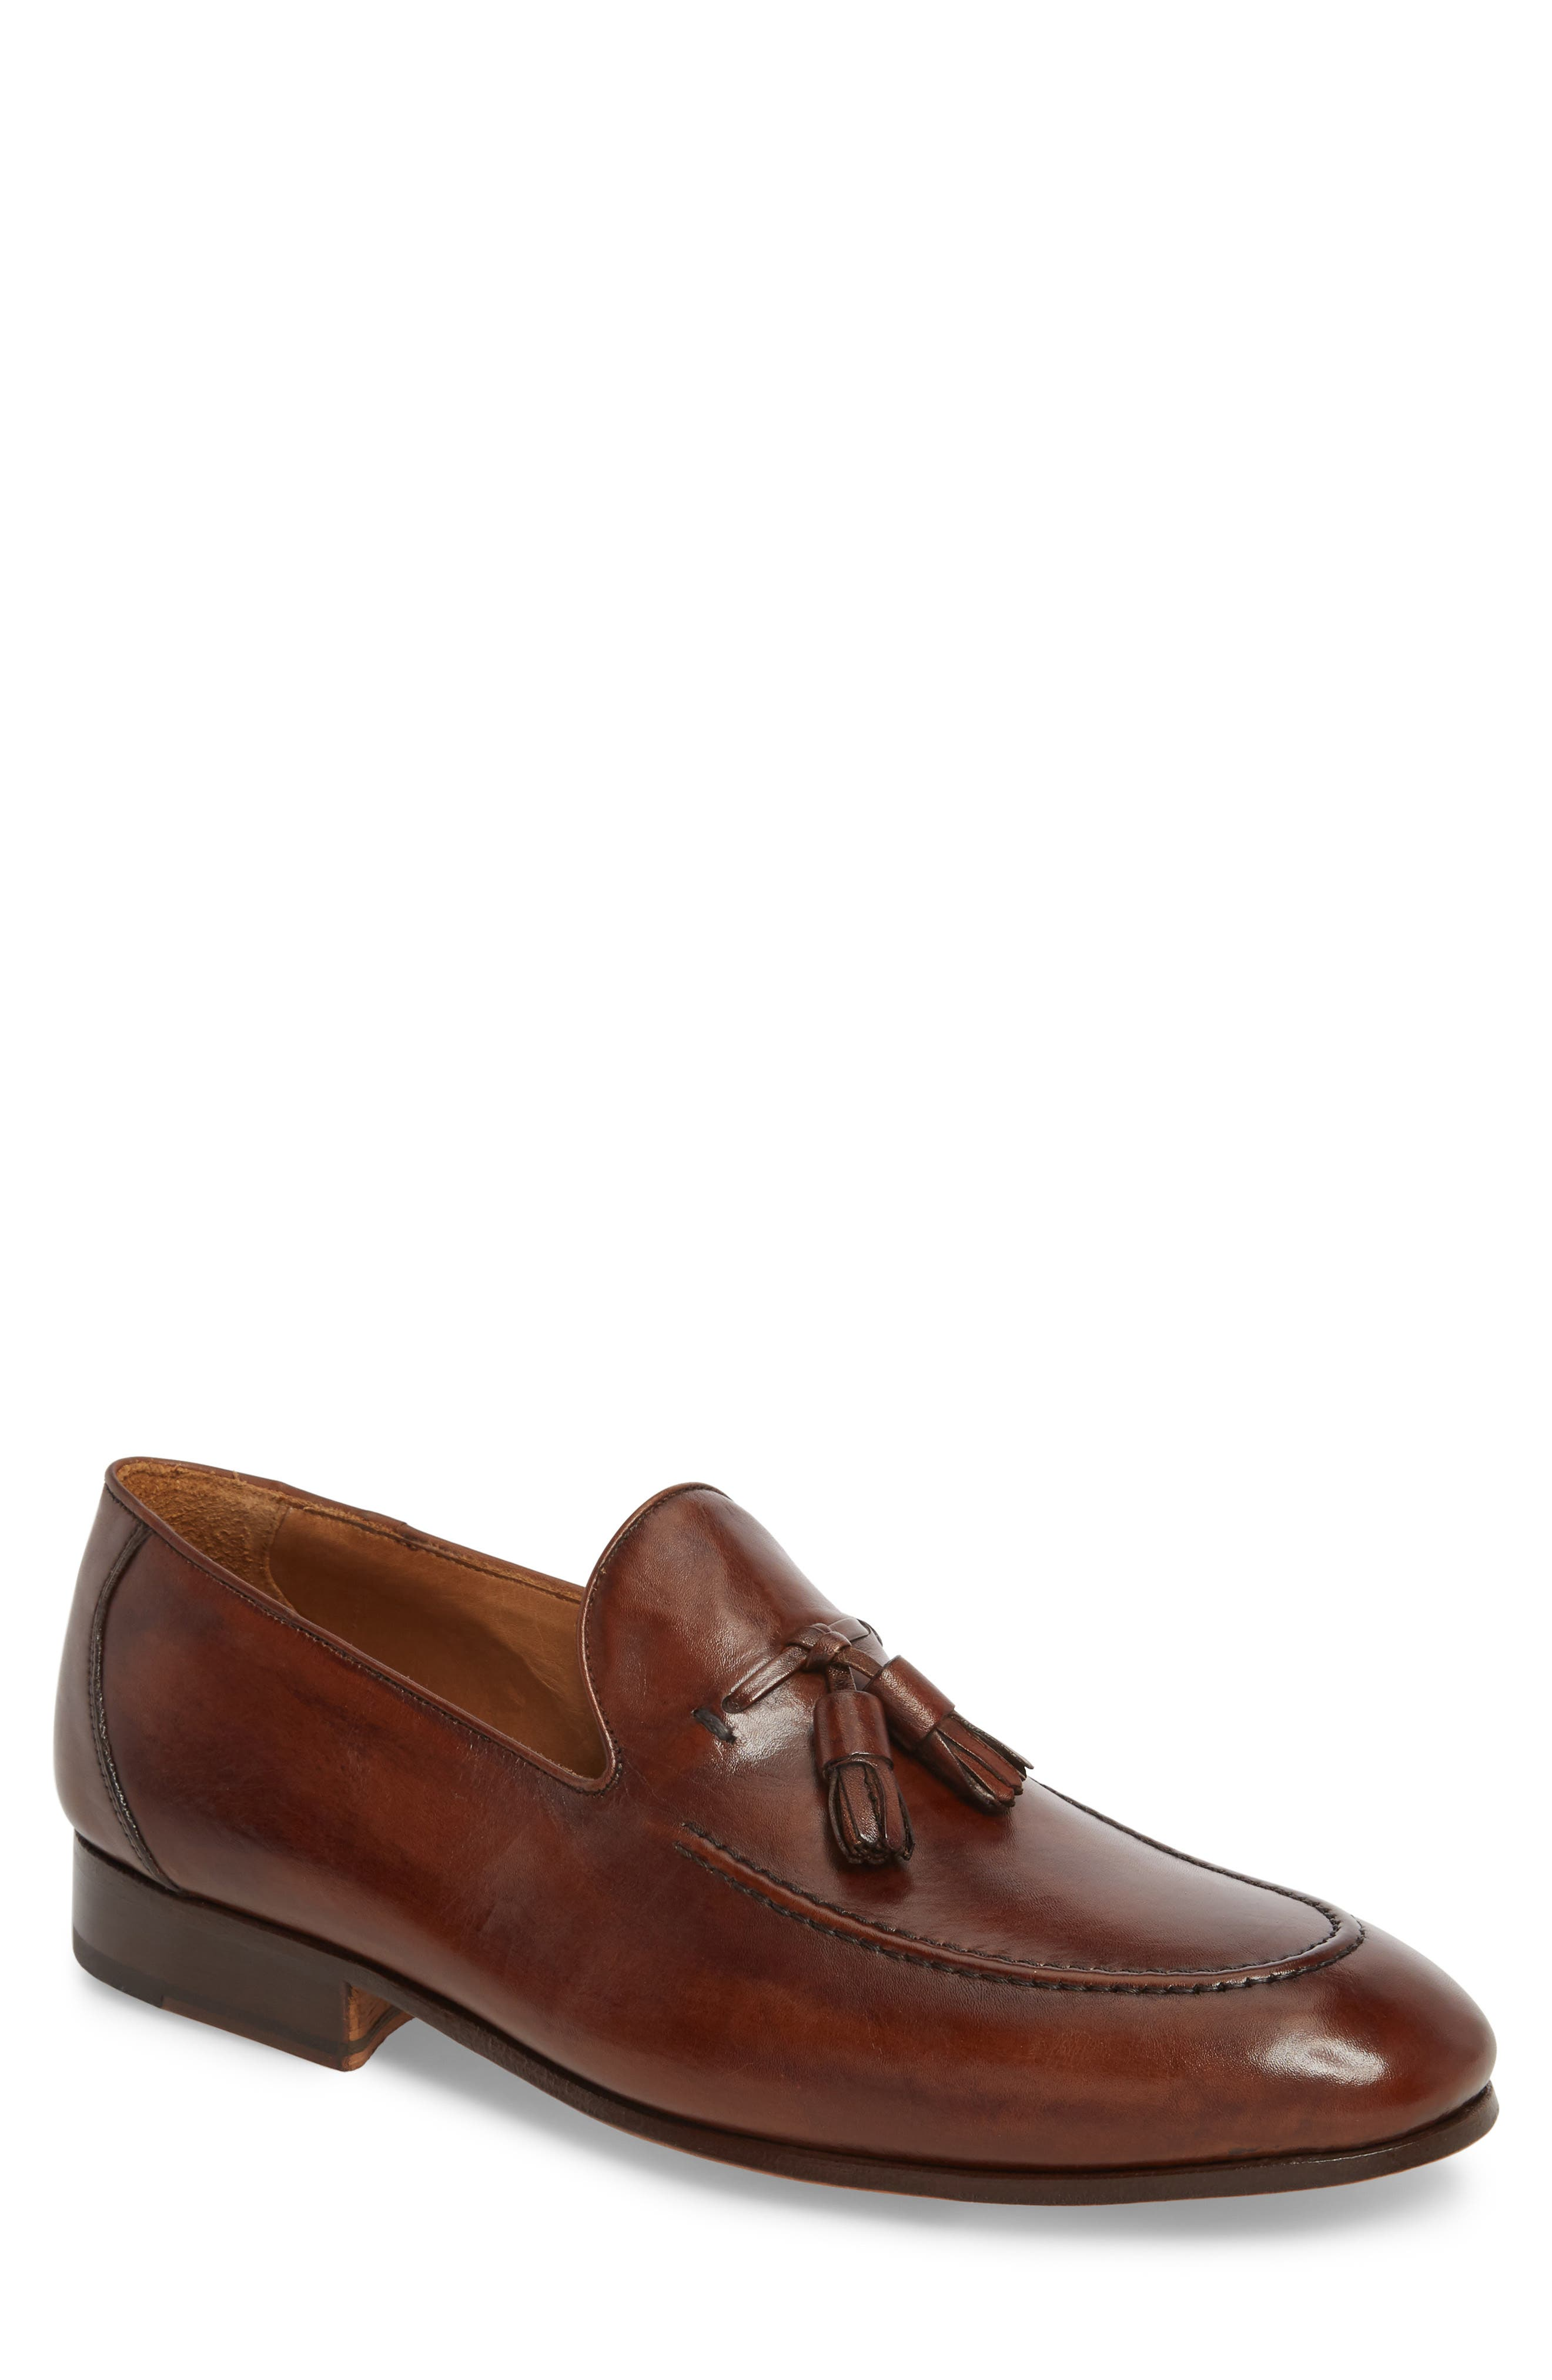 Ario Tassel Loafer,                         Main,                         color, BROWN LEATHER